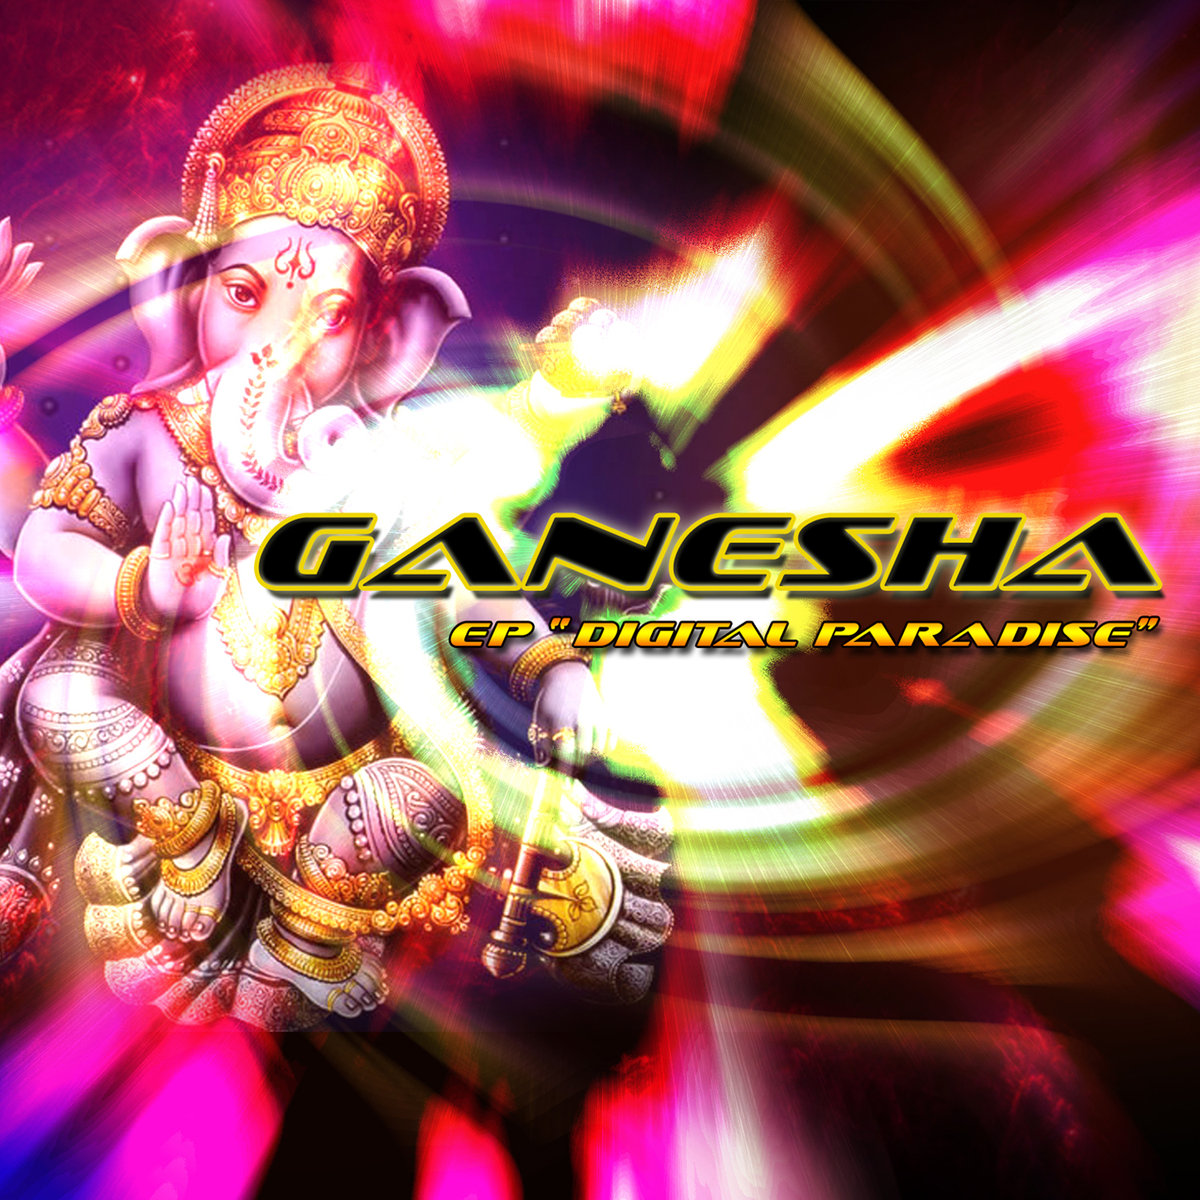 Ganesha - Digital Paradise (artwork)